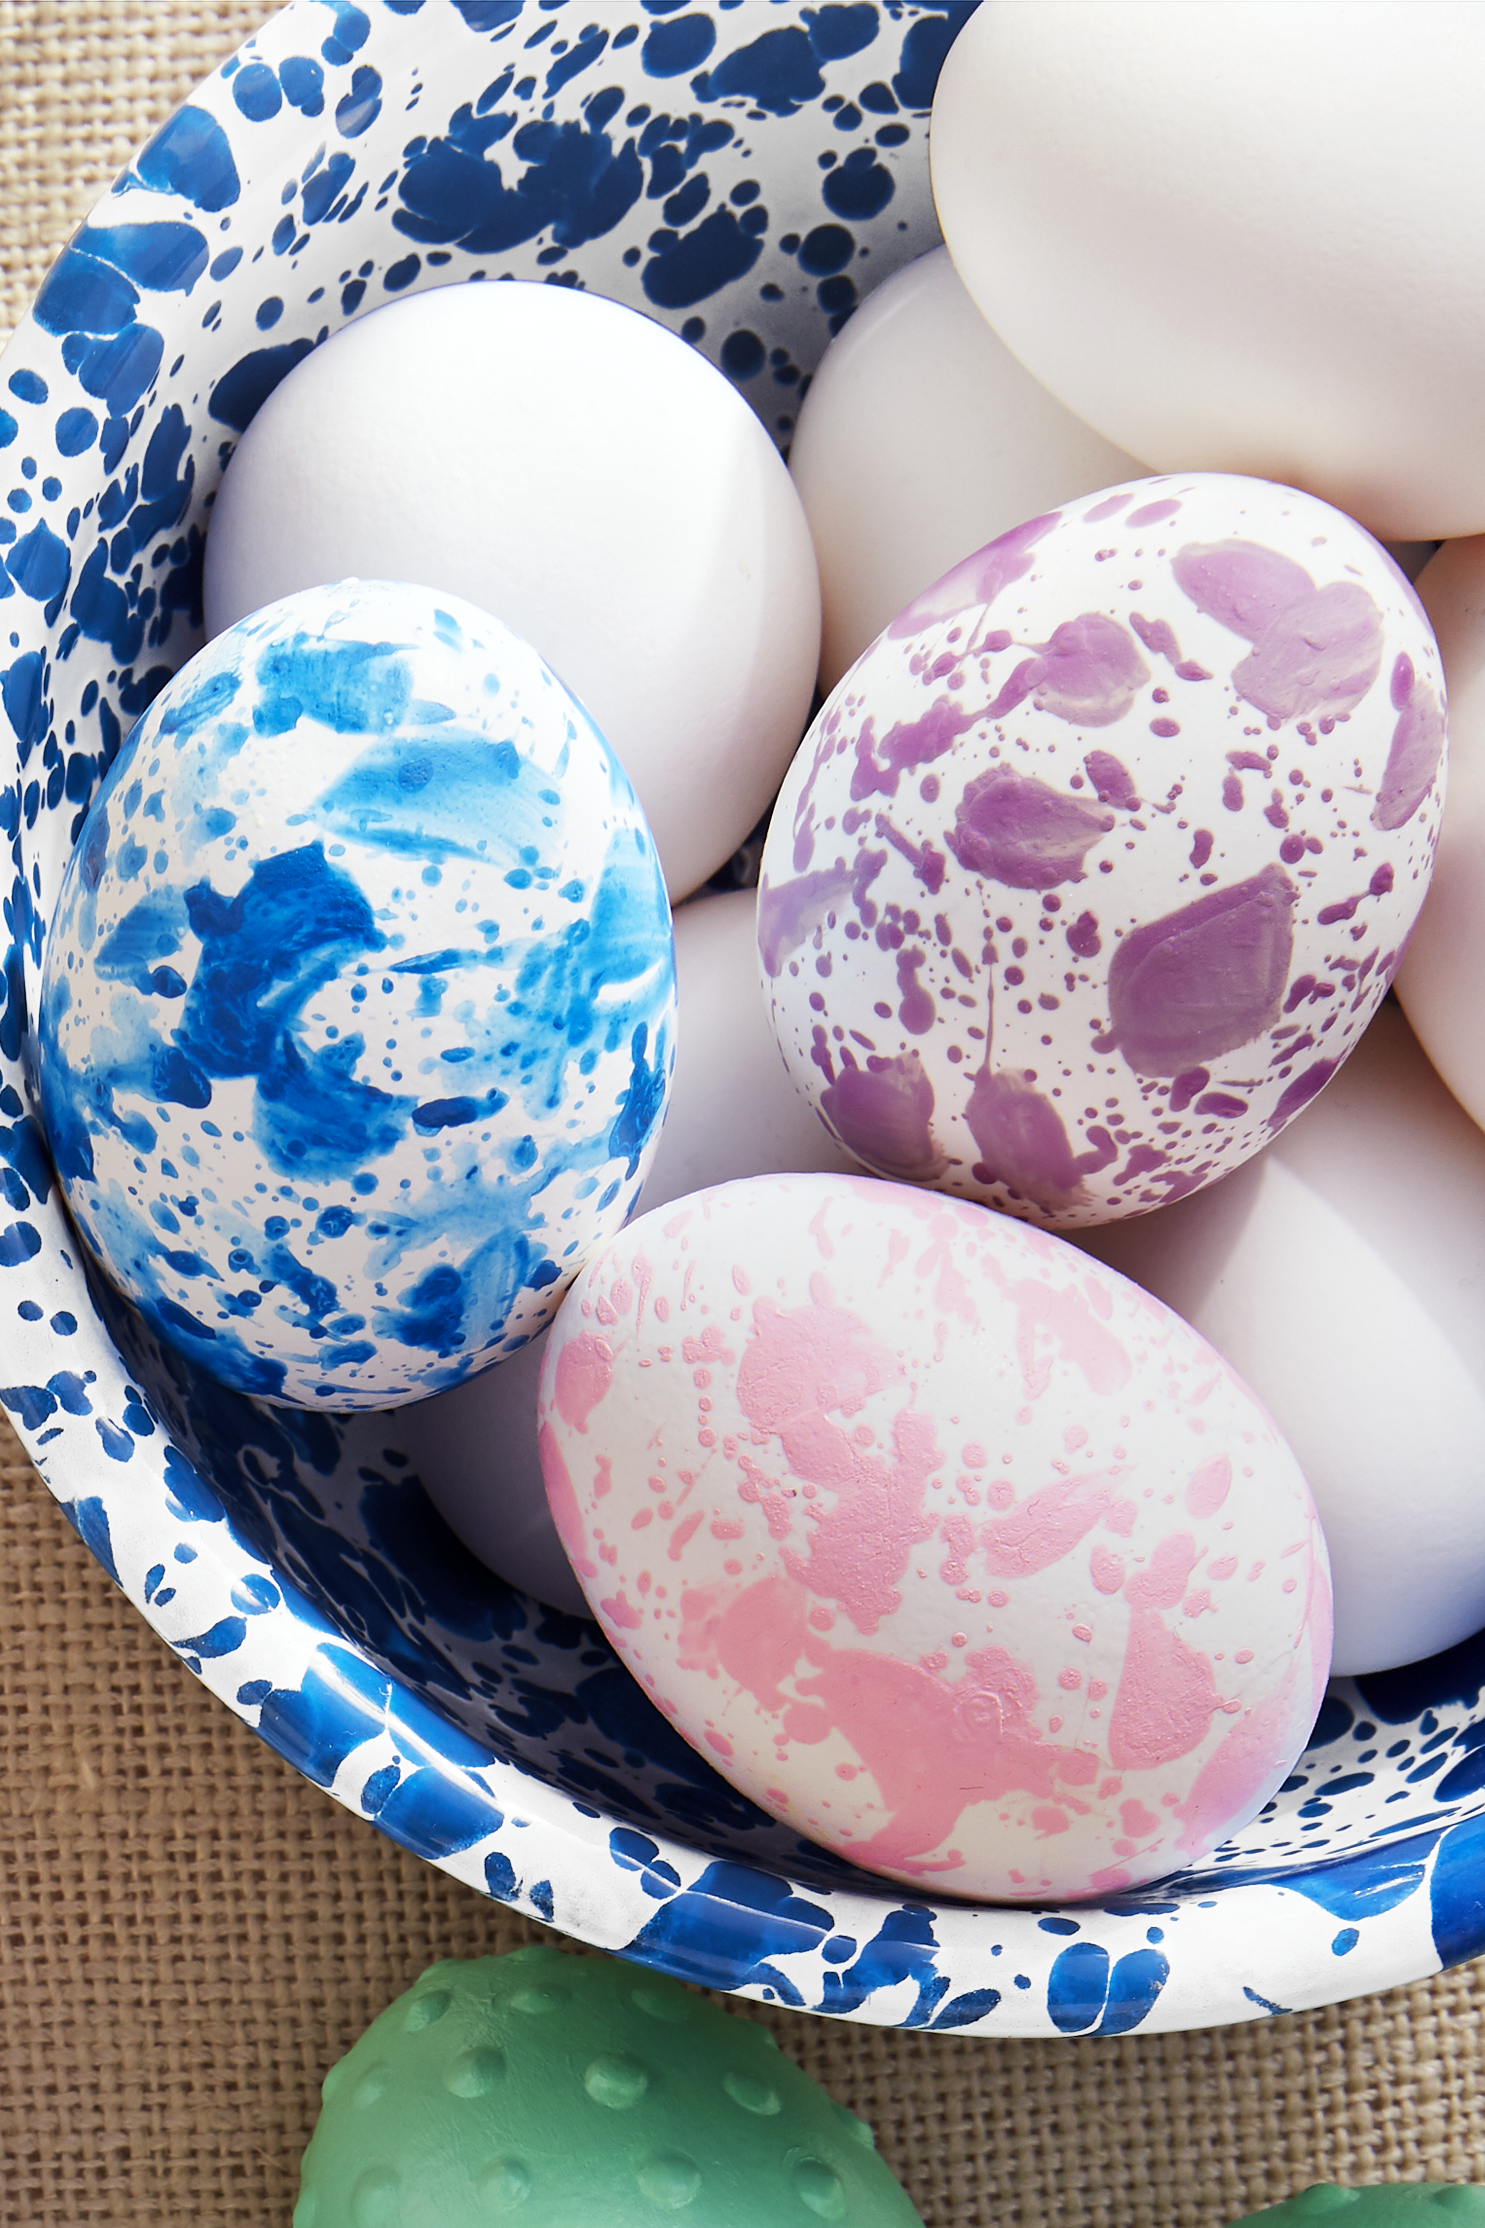 Easter egg designs images galleries for Easter egg ideas